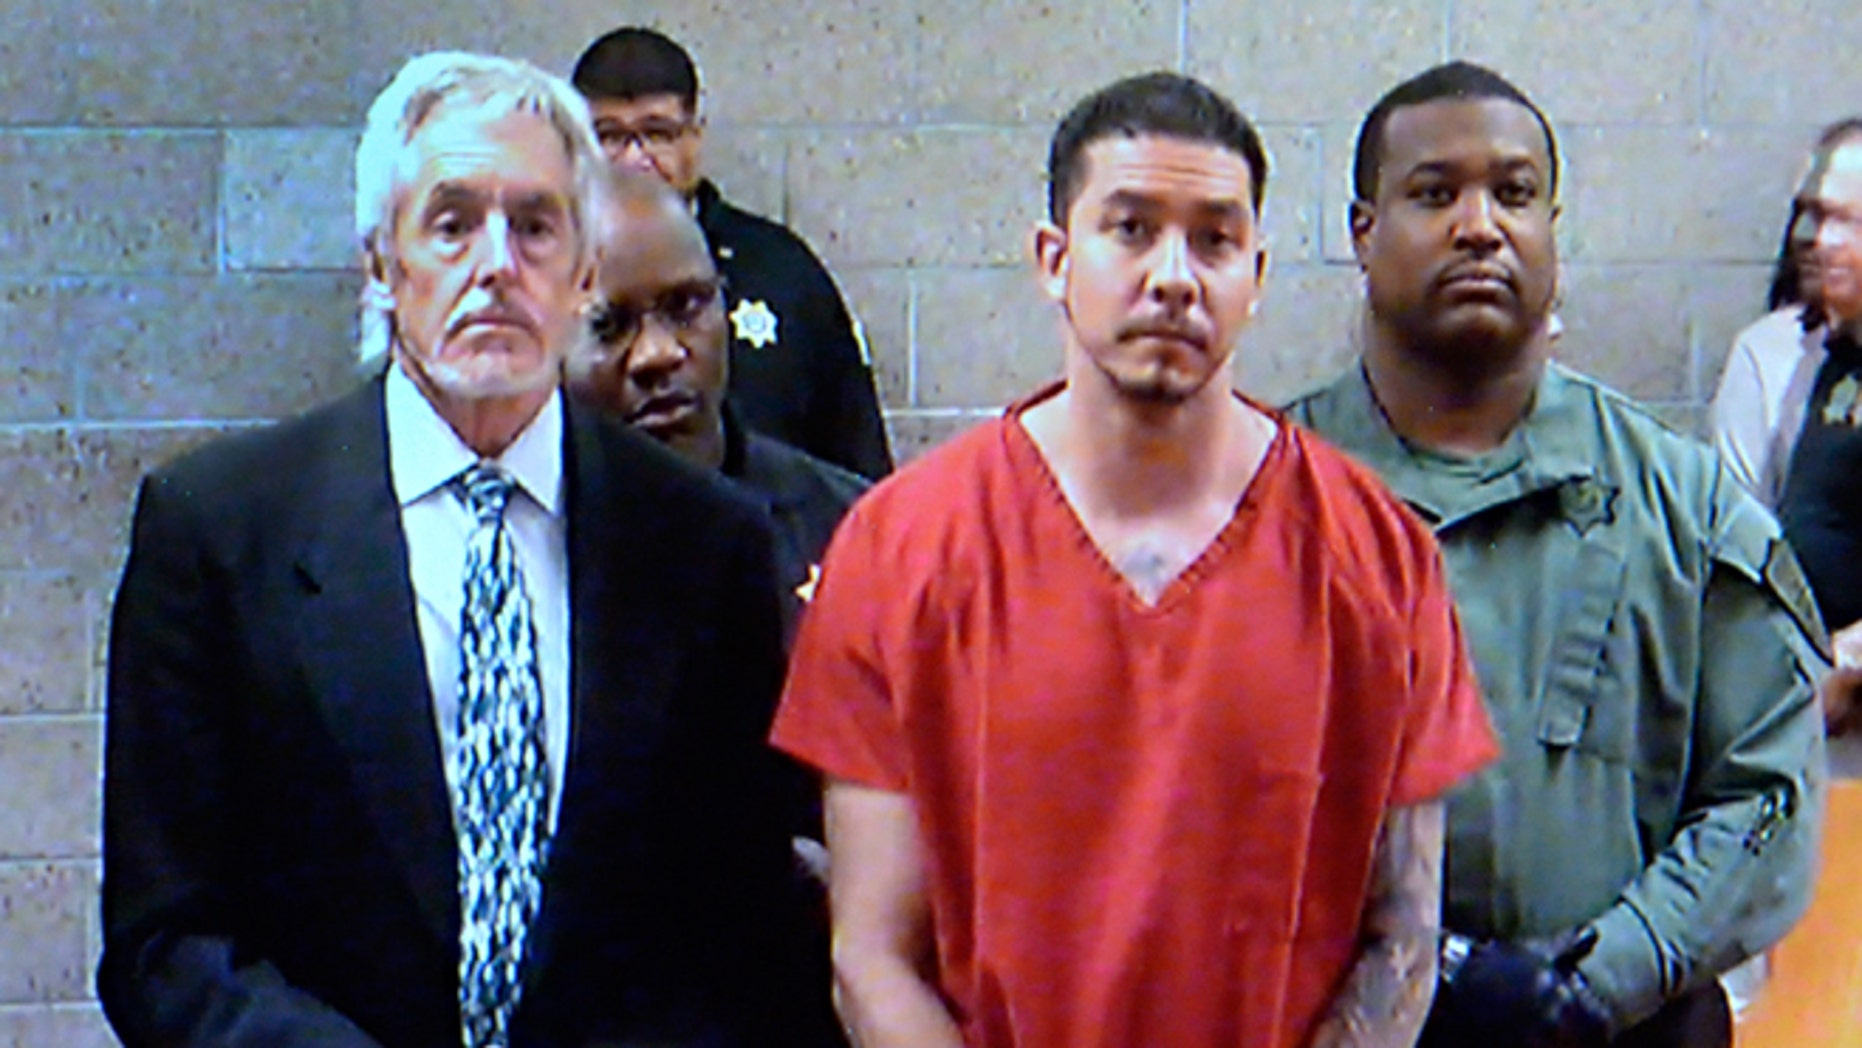 In this video frame grab provided by the Albuquerque Metro Court, Tony Torrez, center, stands with public defender Jeff Rein, left, while making an appearance at the Albuquerque Metro Court via video in Albuquerque, N.M., Thursday, Oct. 22, 2015. Torrez has been charged with murder, assault, child abuse and other crimes following his arrest Wednesday in a deadly road rage shooting that killed a 4-year-old girl. (Albuquerque Metro Court/The Albuquerque Journal via AP, Pool)